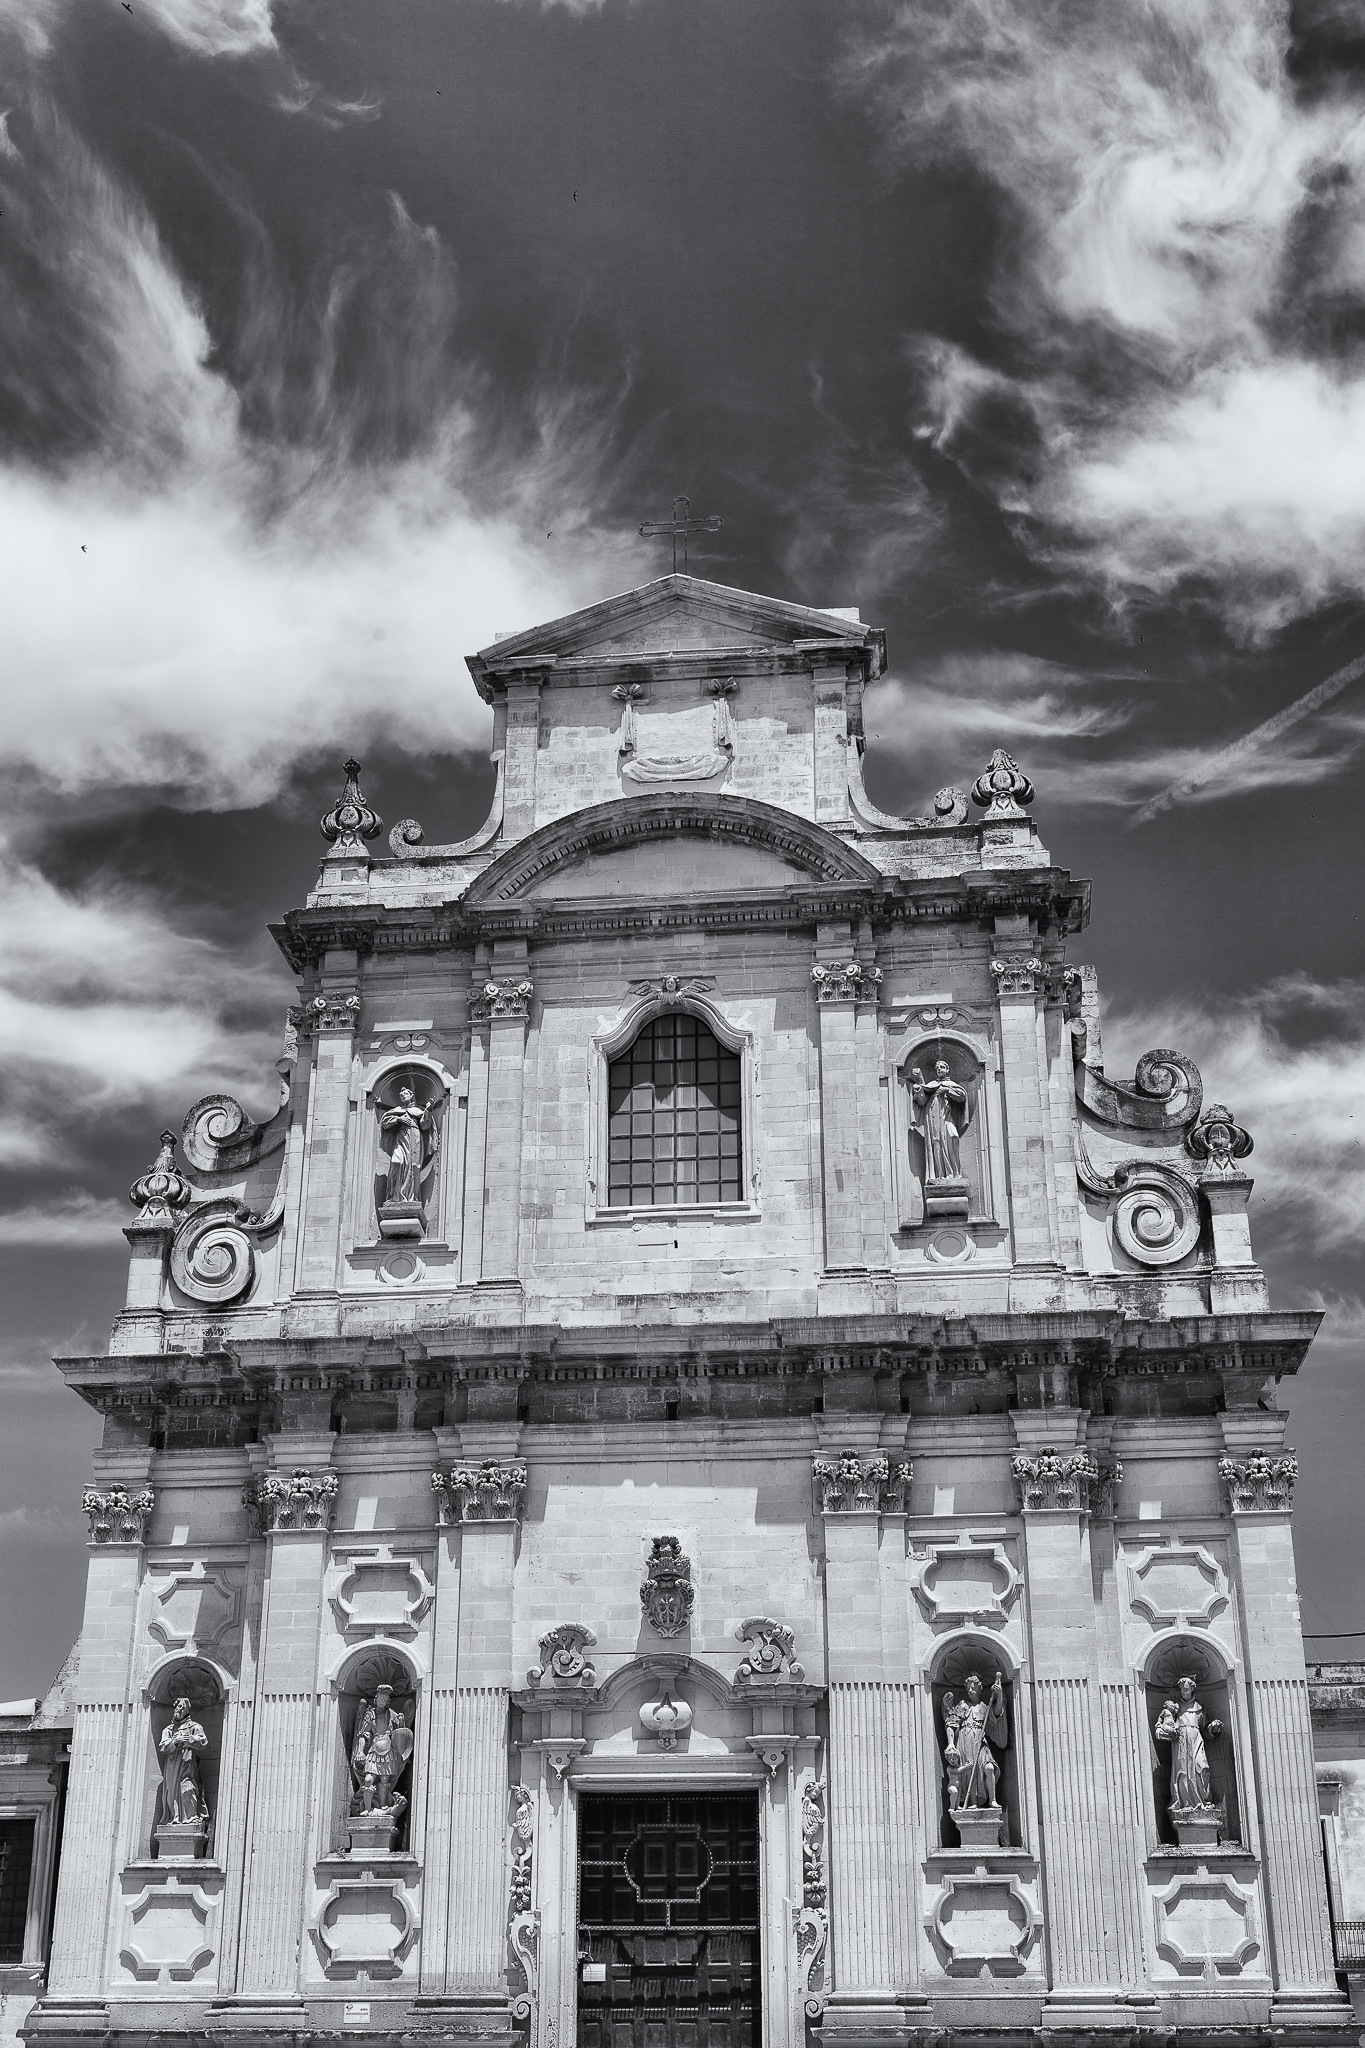 Clouds & Barocco Cathedral by paolo cancelliere